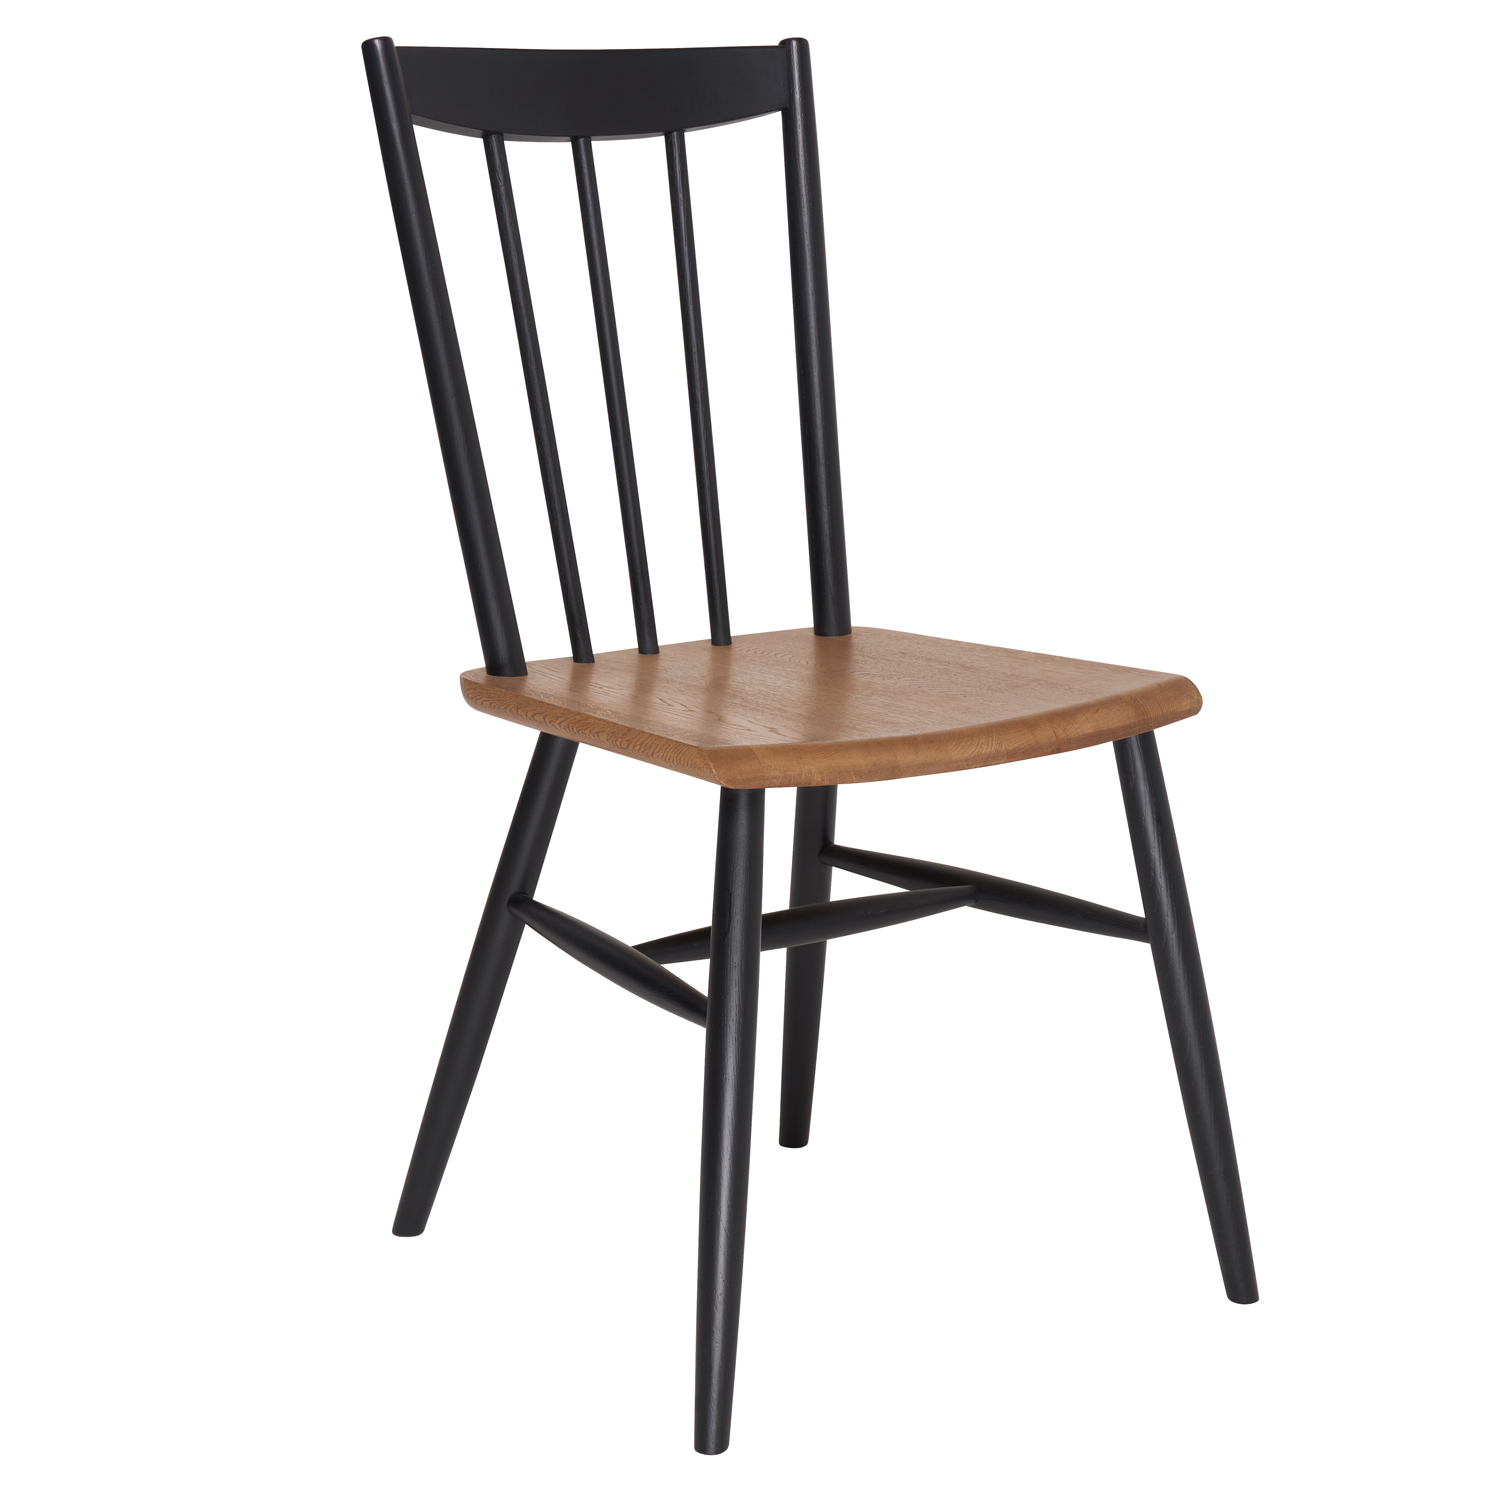 Ercol Monza Dining Chair